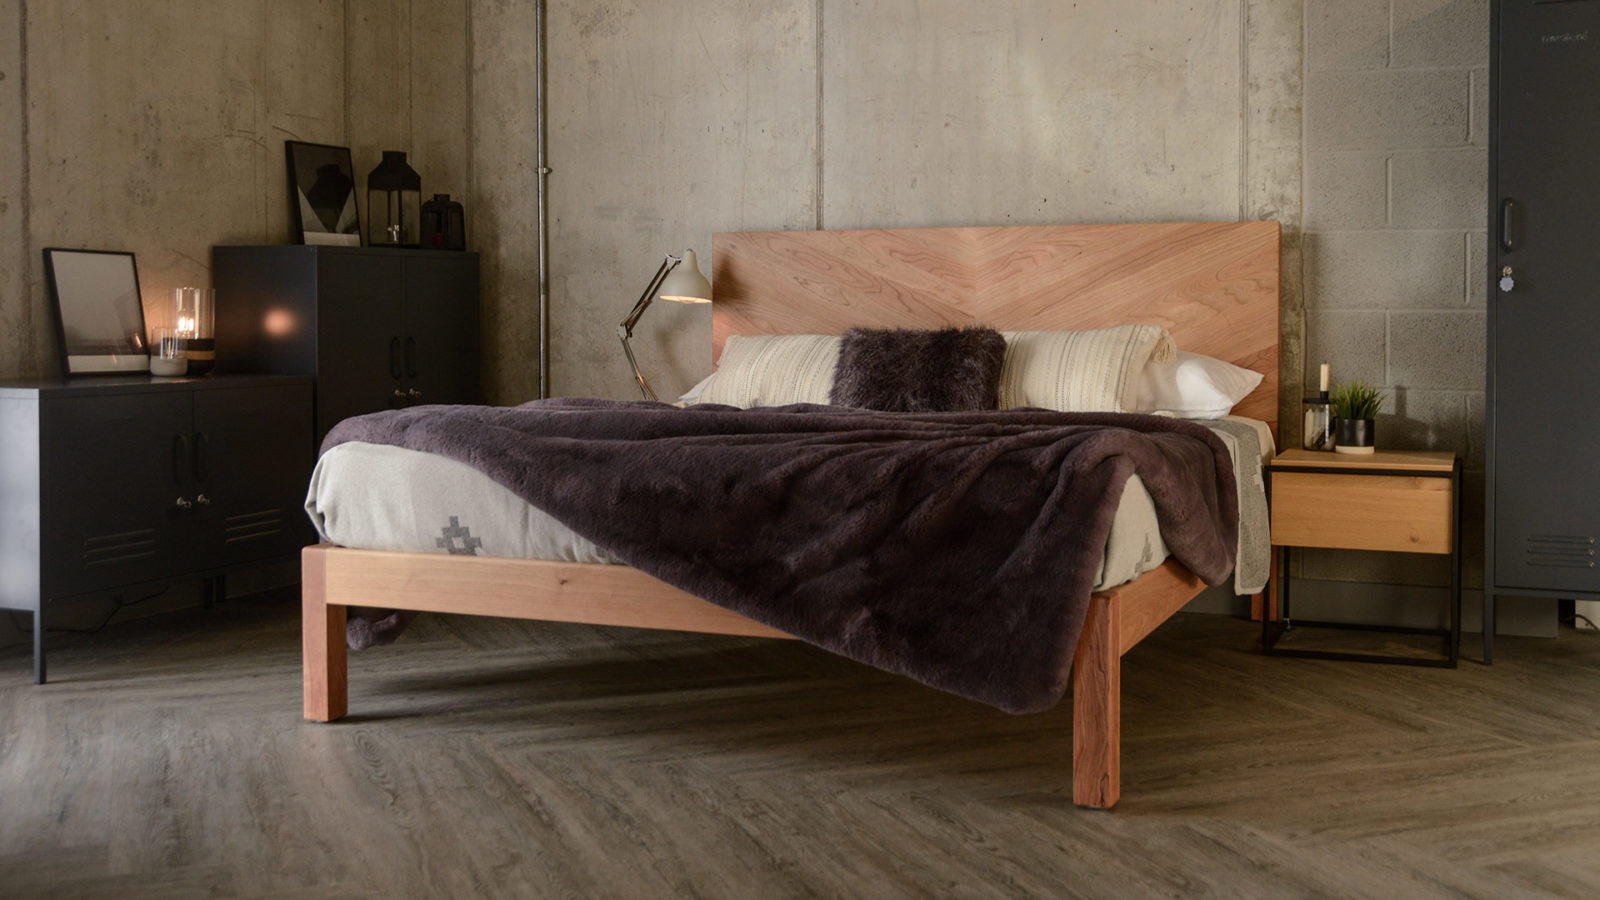 Hand made in Britain the solid wood Hathersage bed with chevron headboard in cherry